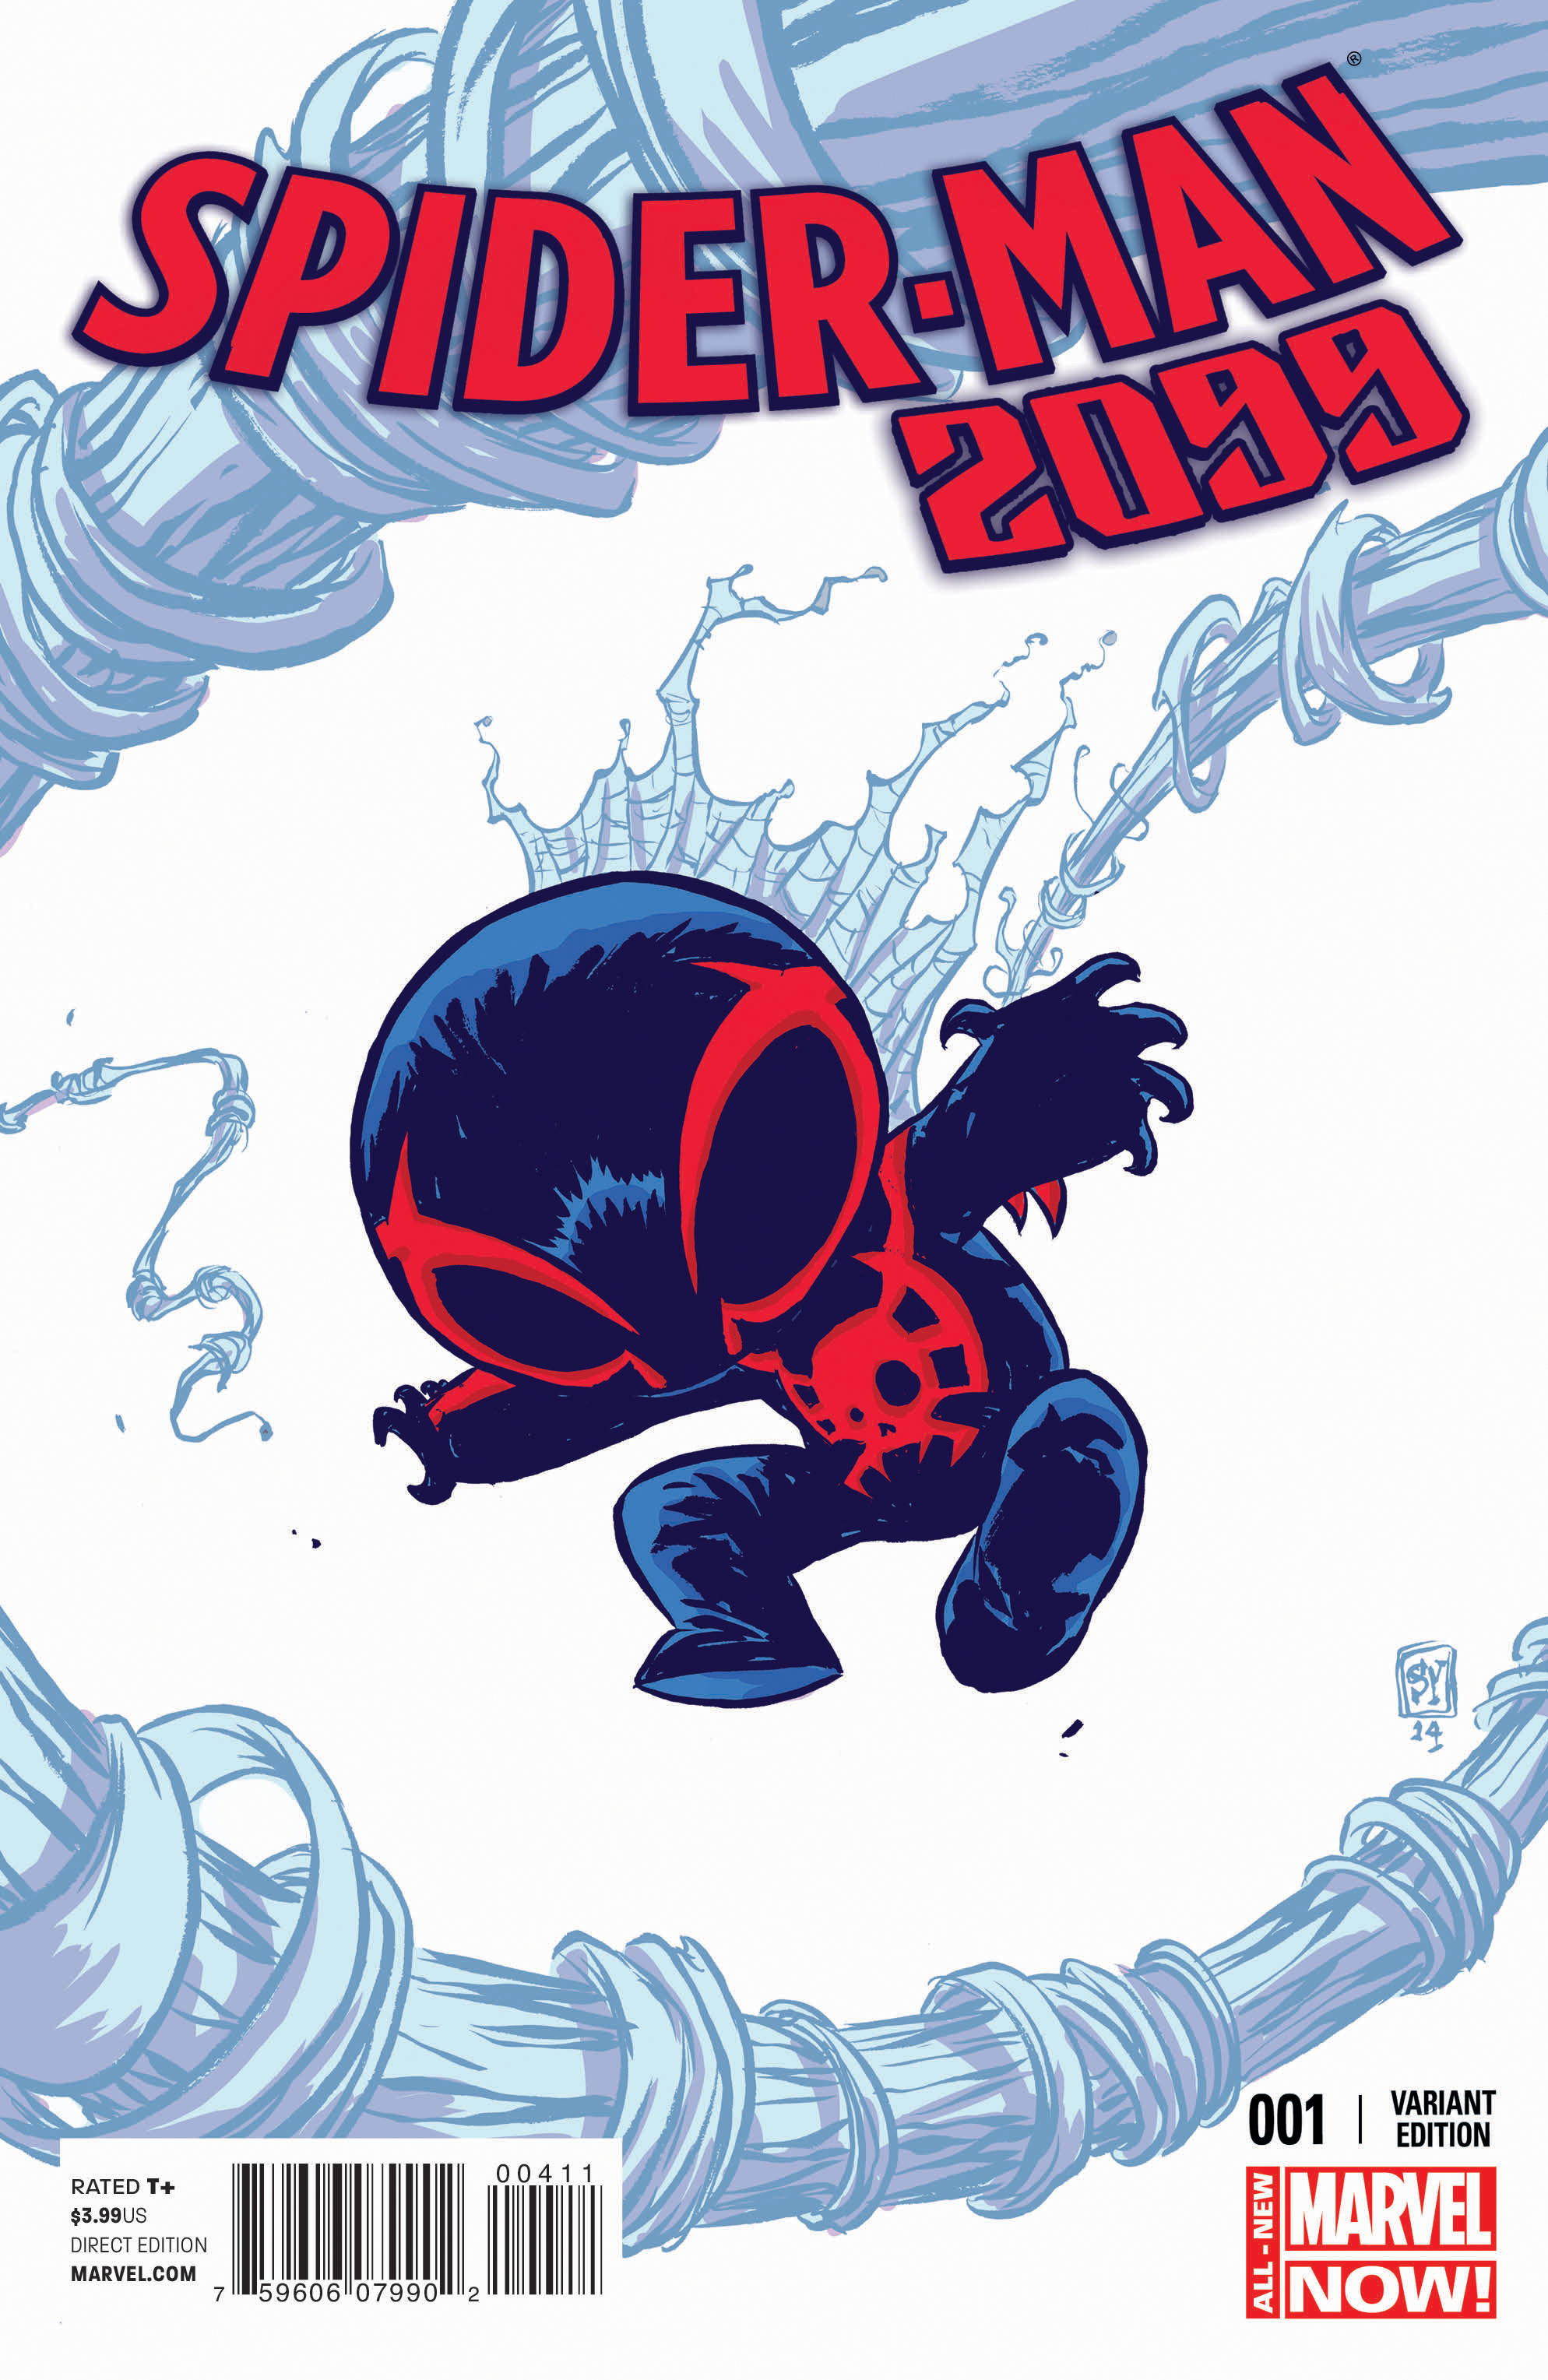 SPIDER-MAN 2099 #1 YOUNG VAR ANMN